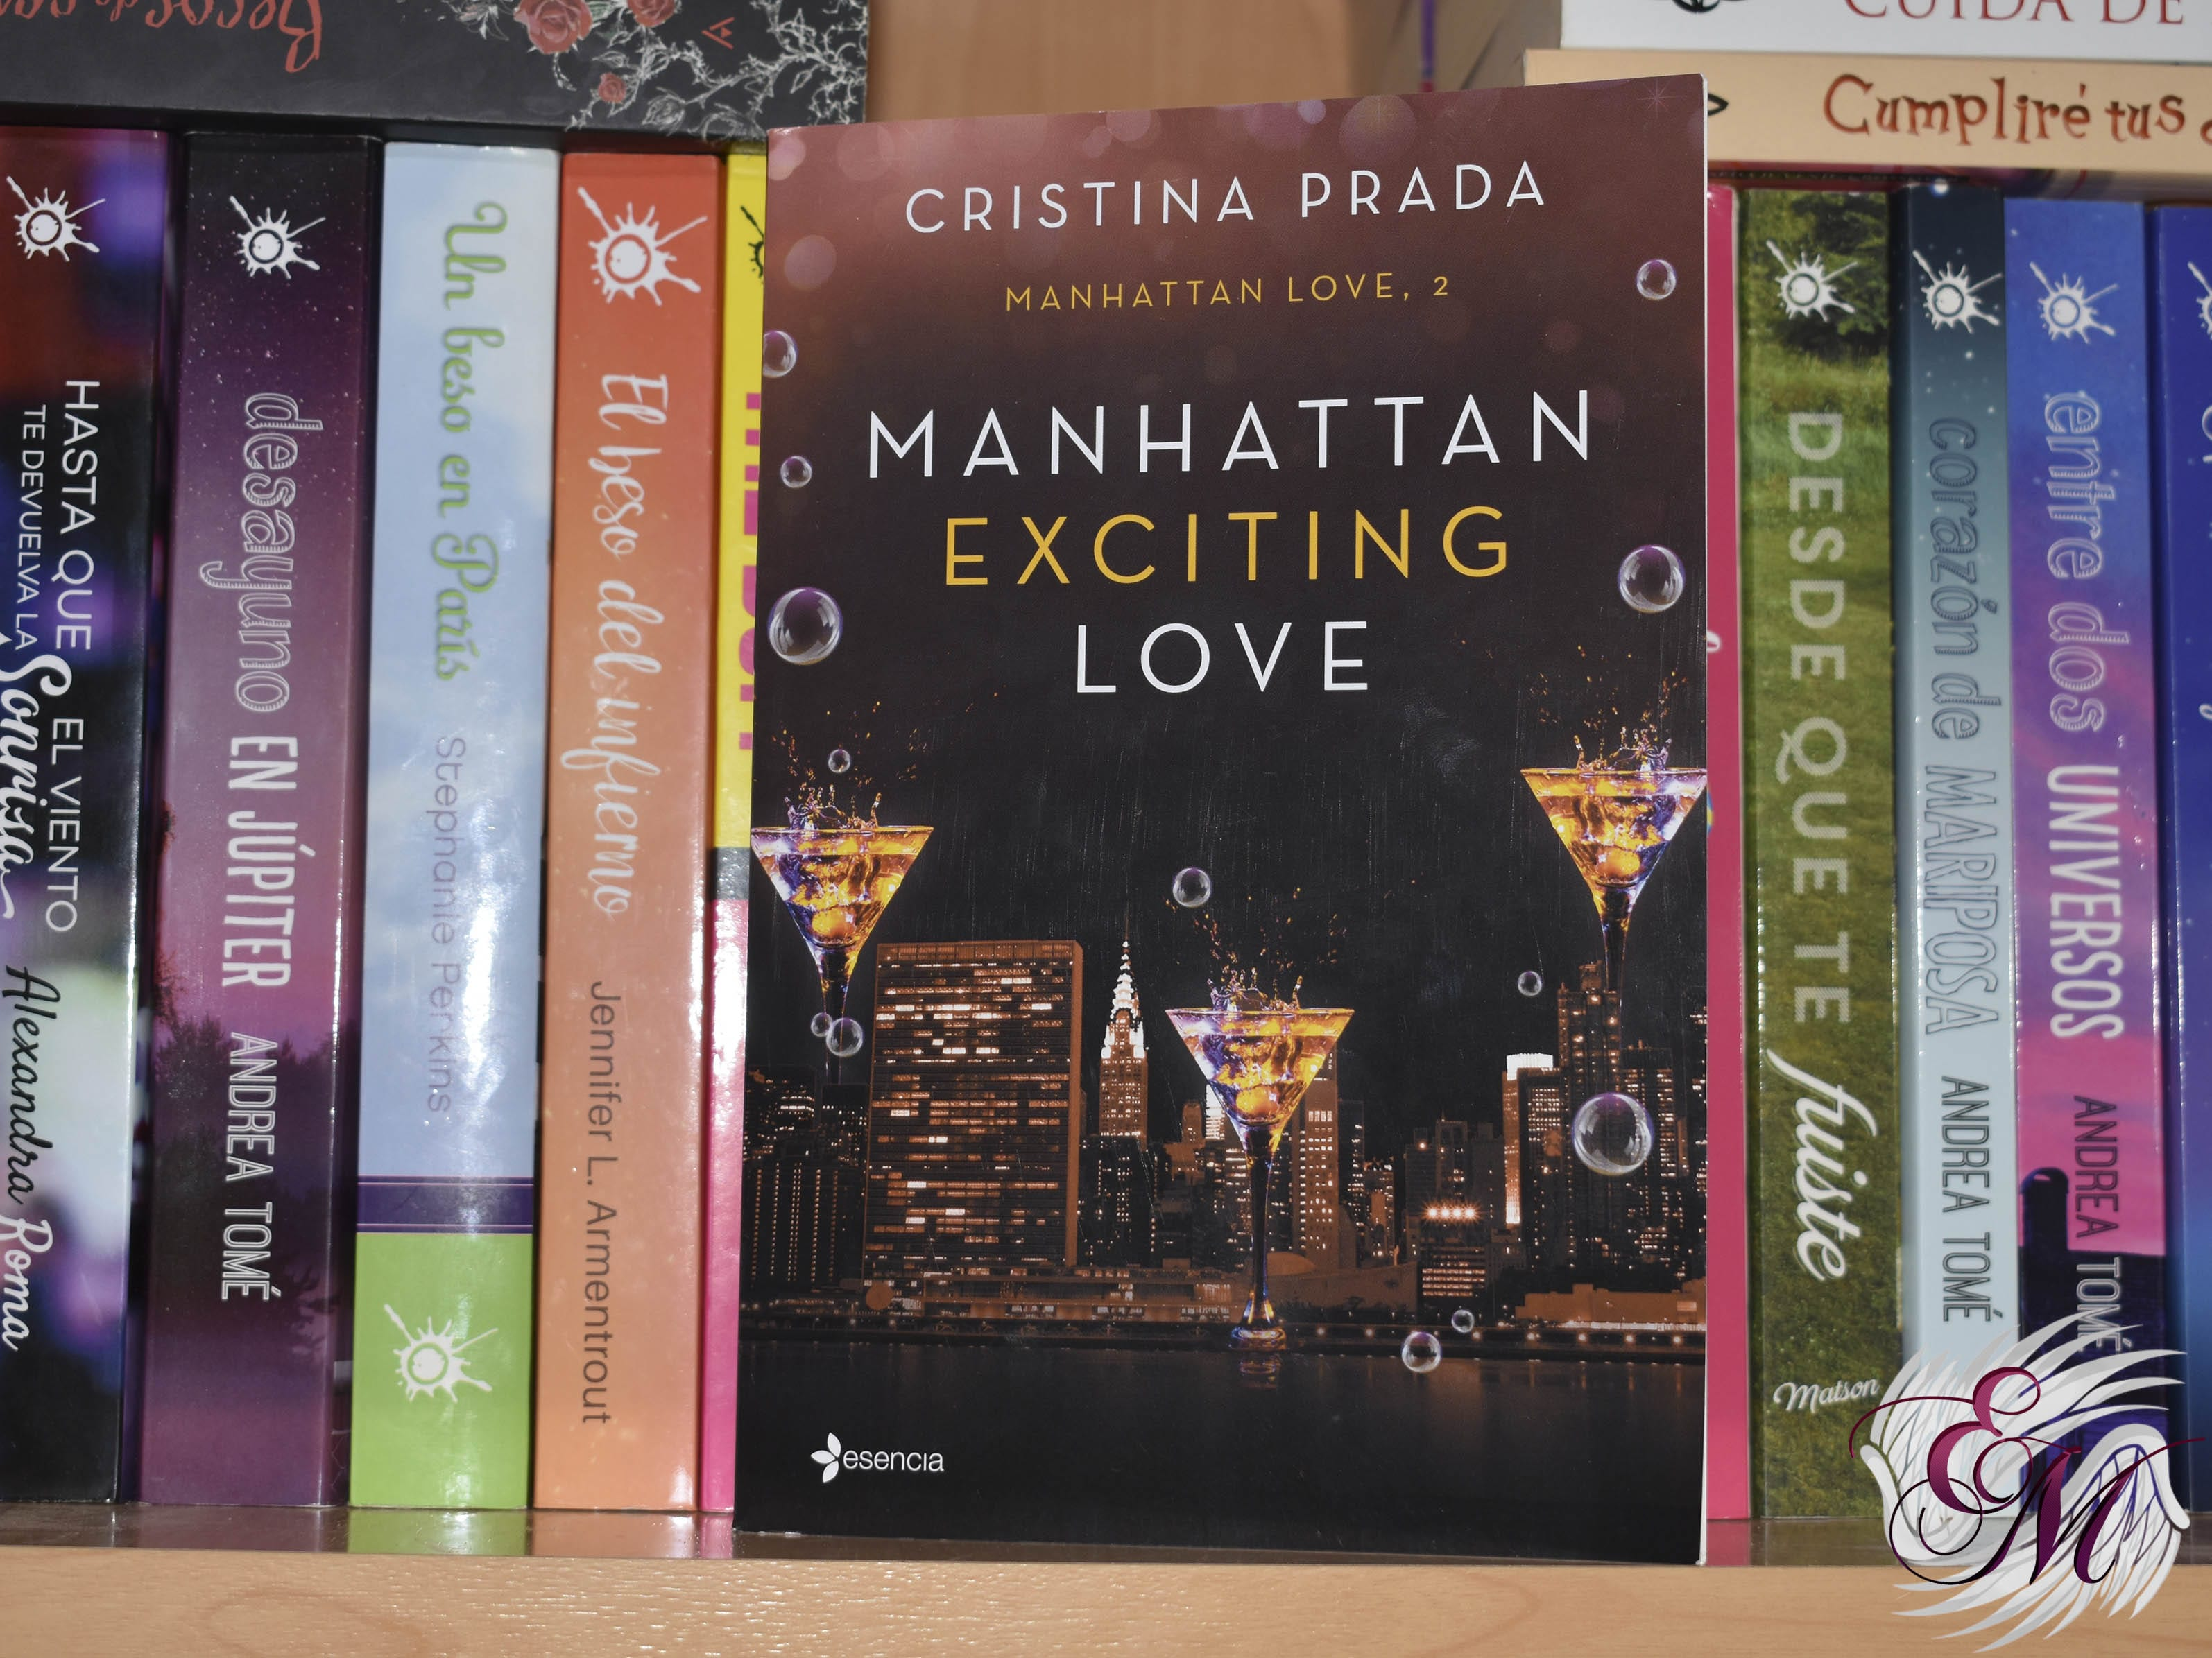 Manhattan exciting love, de Cristina Prada - Reseña